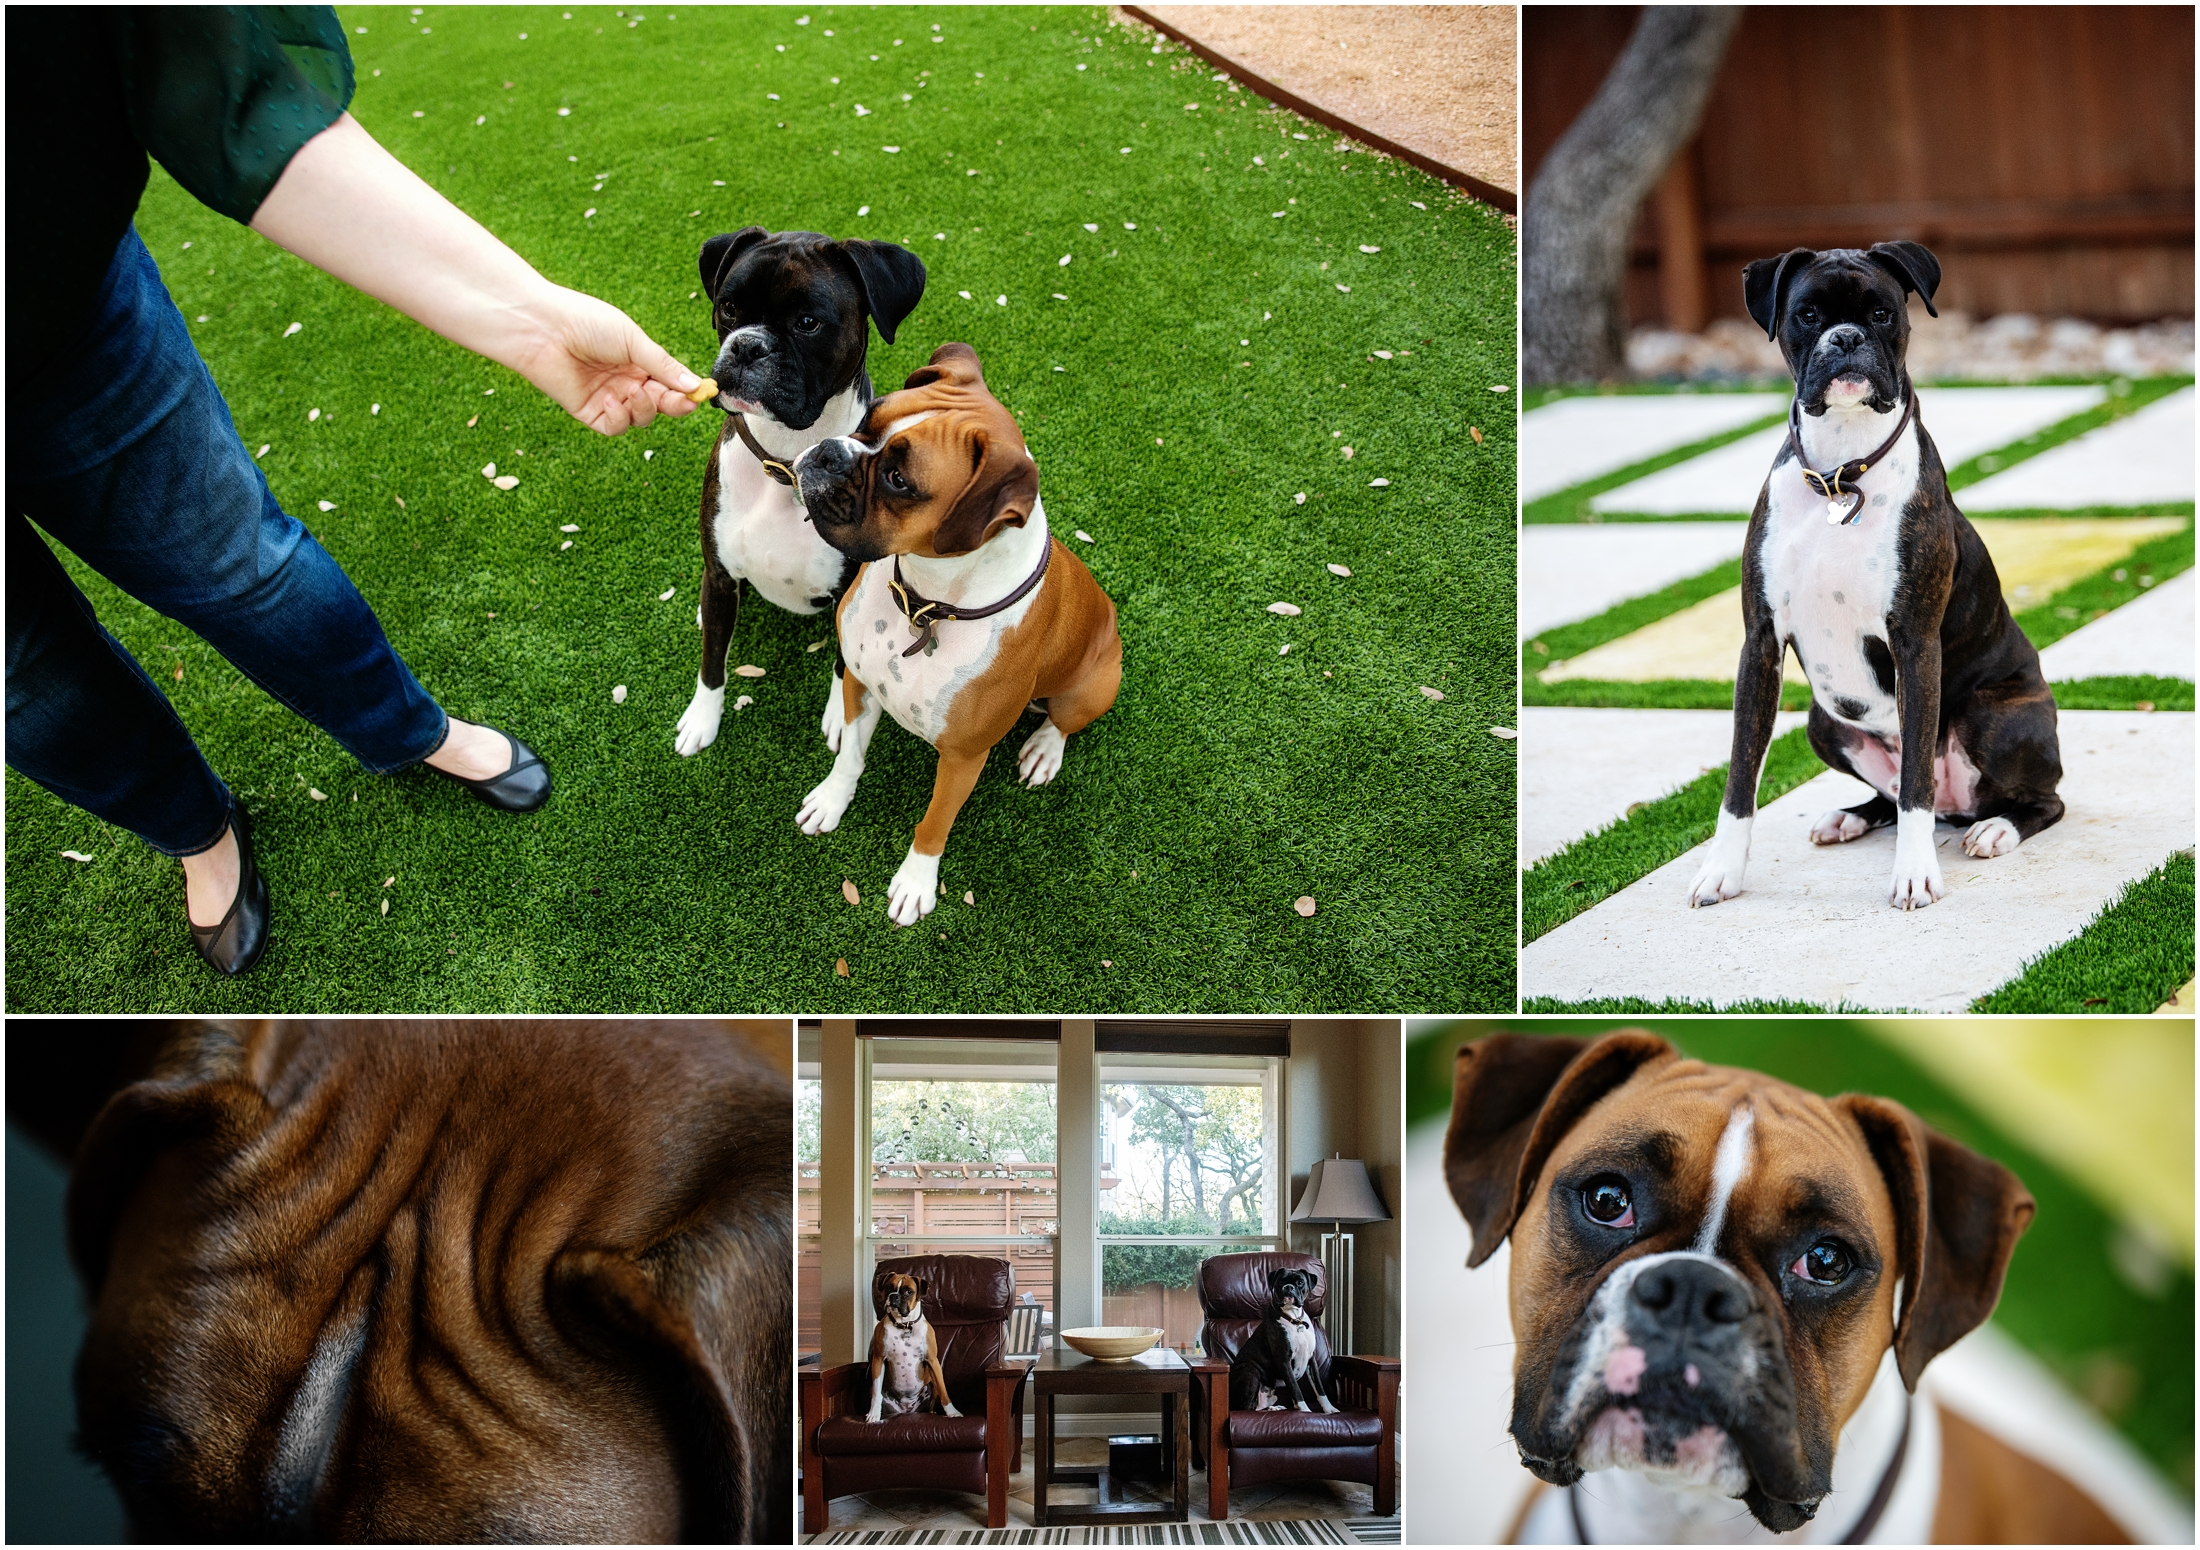 photo collage of boxer dogs